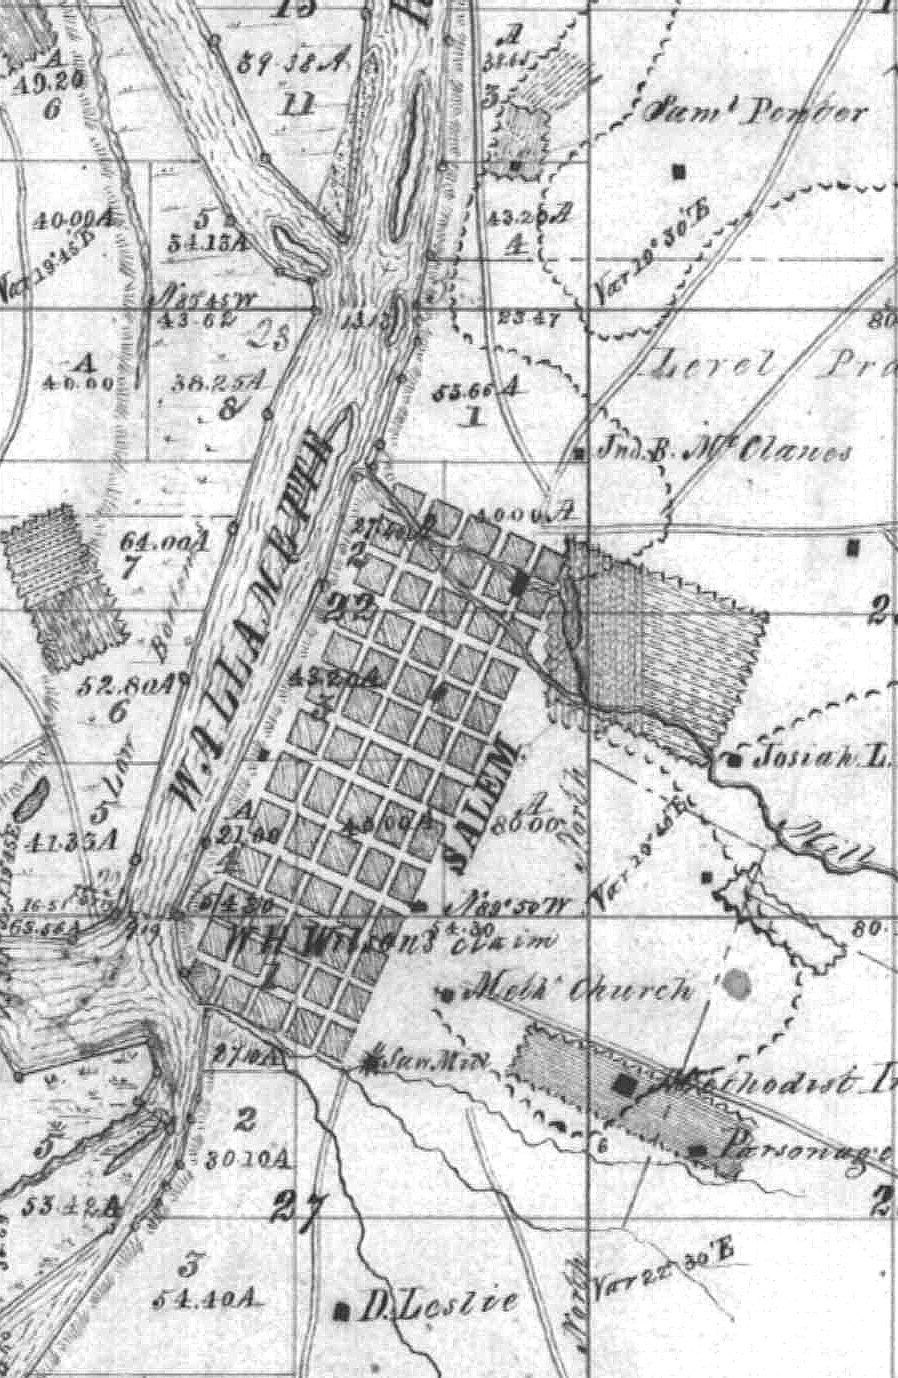 Photo of old survey map